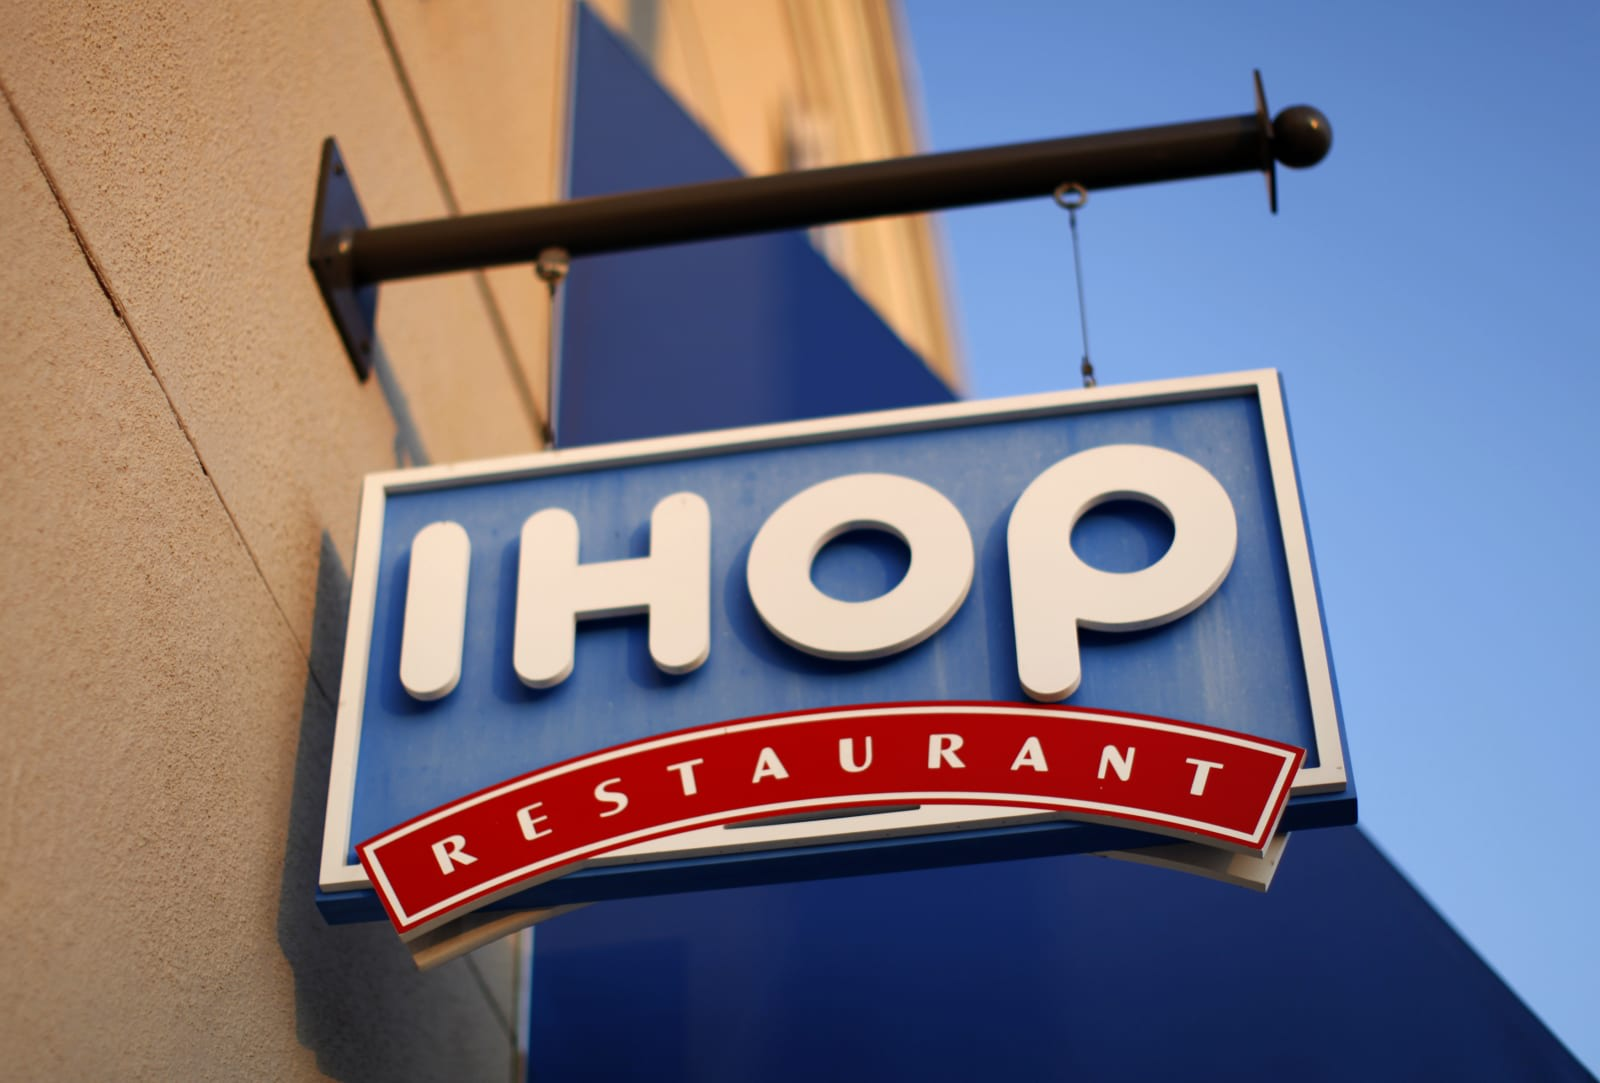 Restaurants open for Christmas - The Blade |Ihop Comments